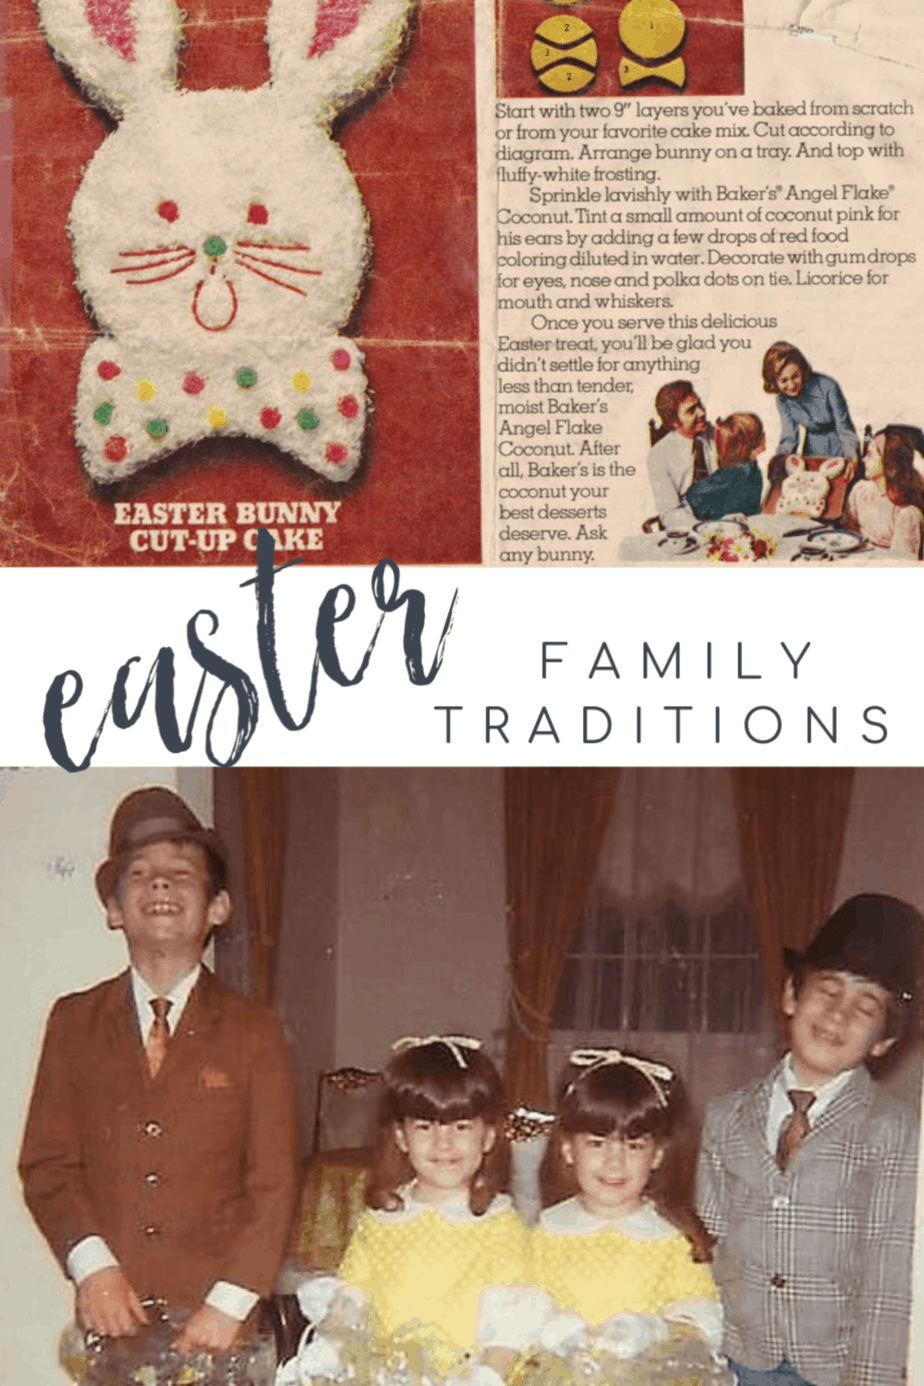 Fun Easter Traditions & Projects For the Entire Family